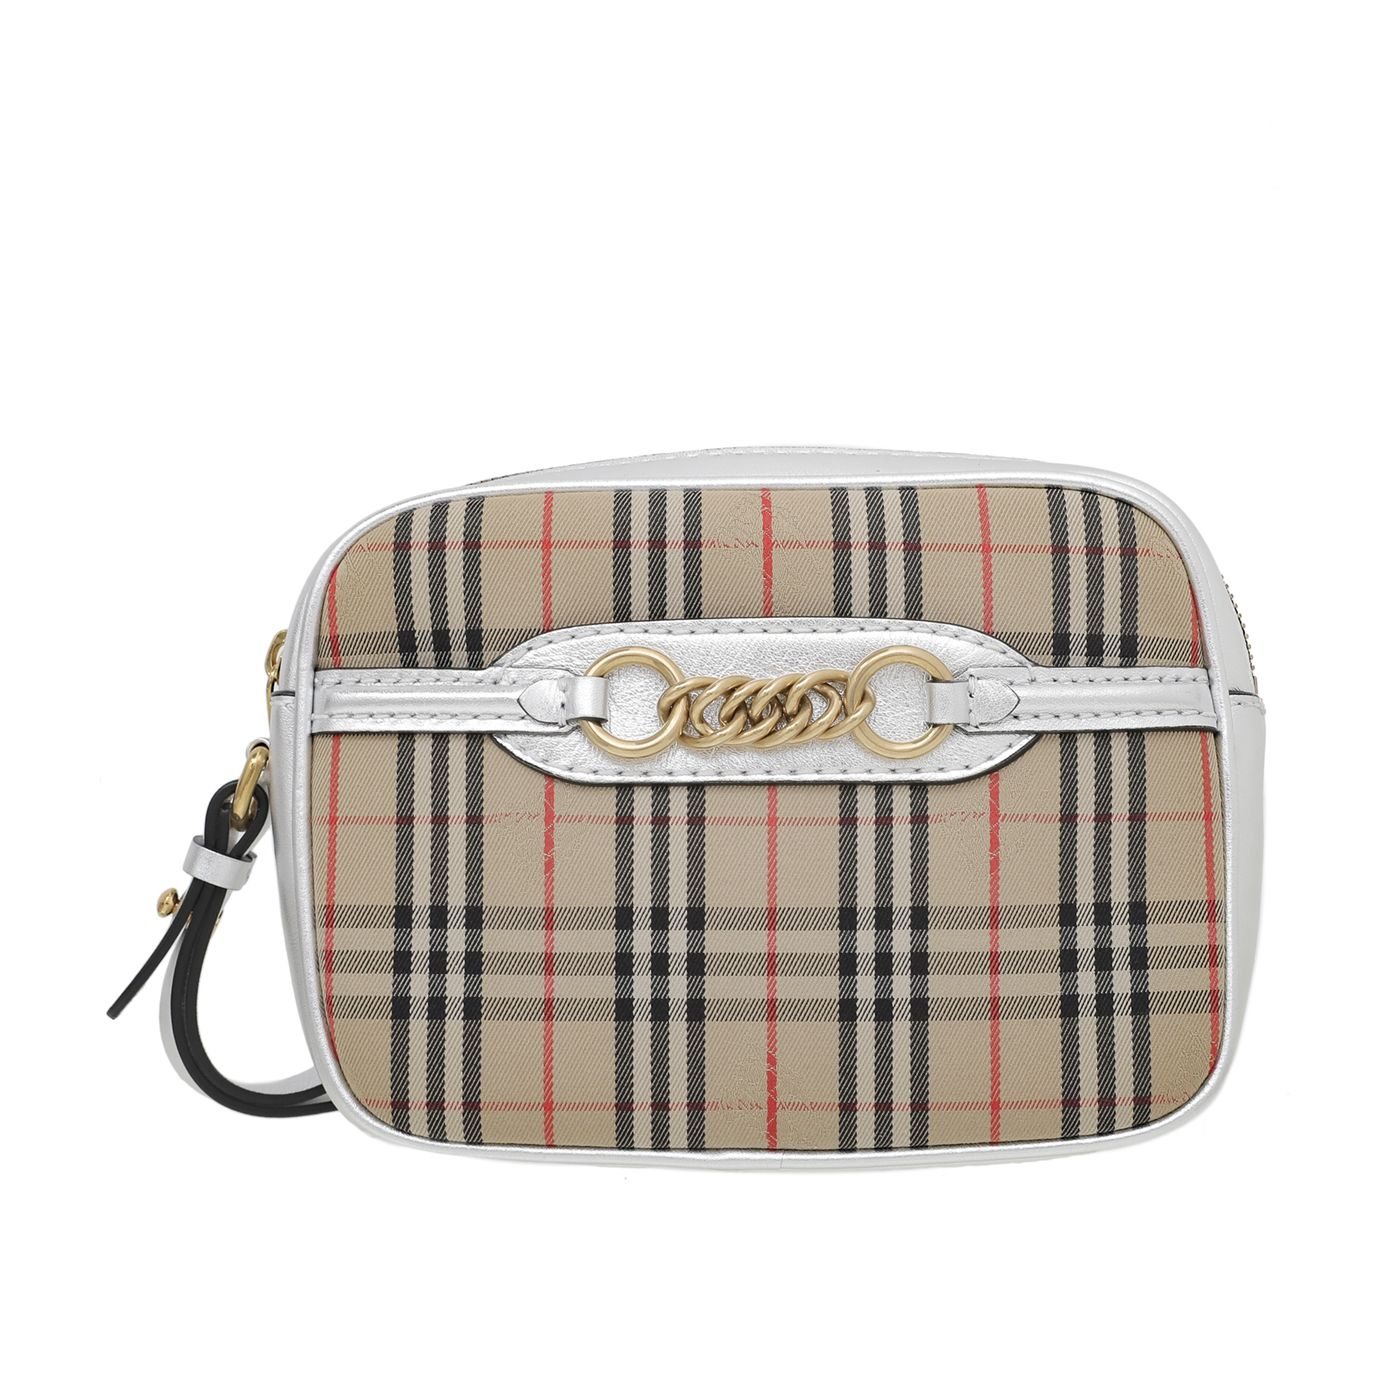 Burberry Bicolor1983 Check with Link Detail Bumbag